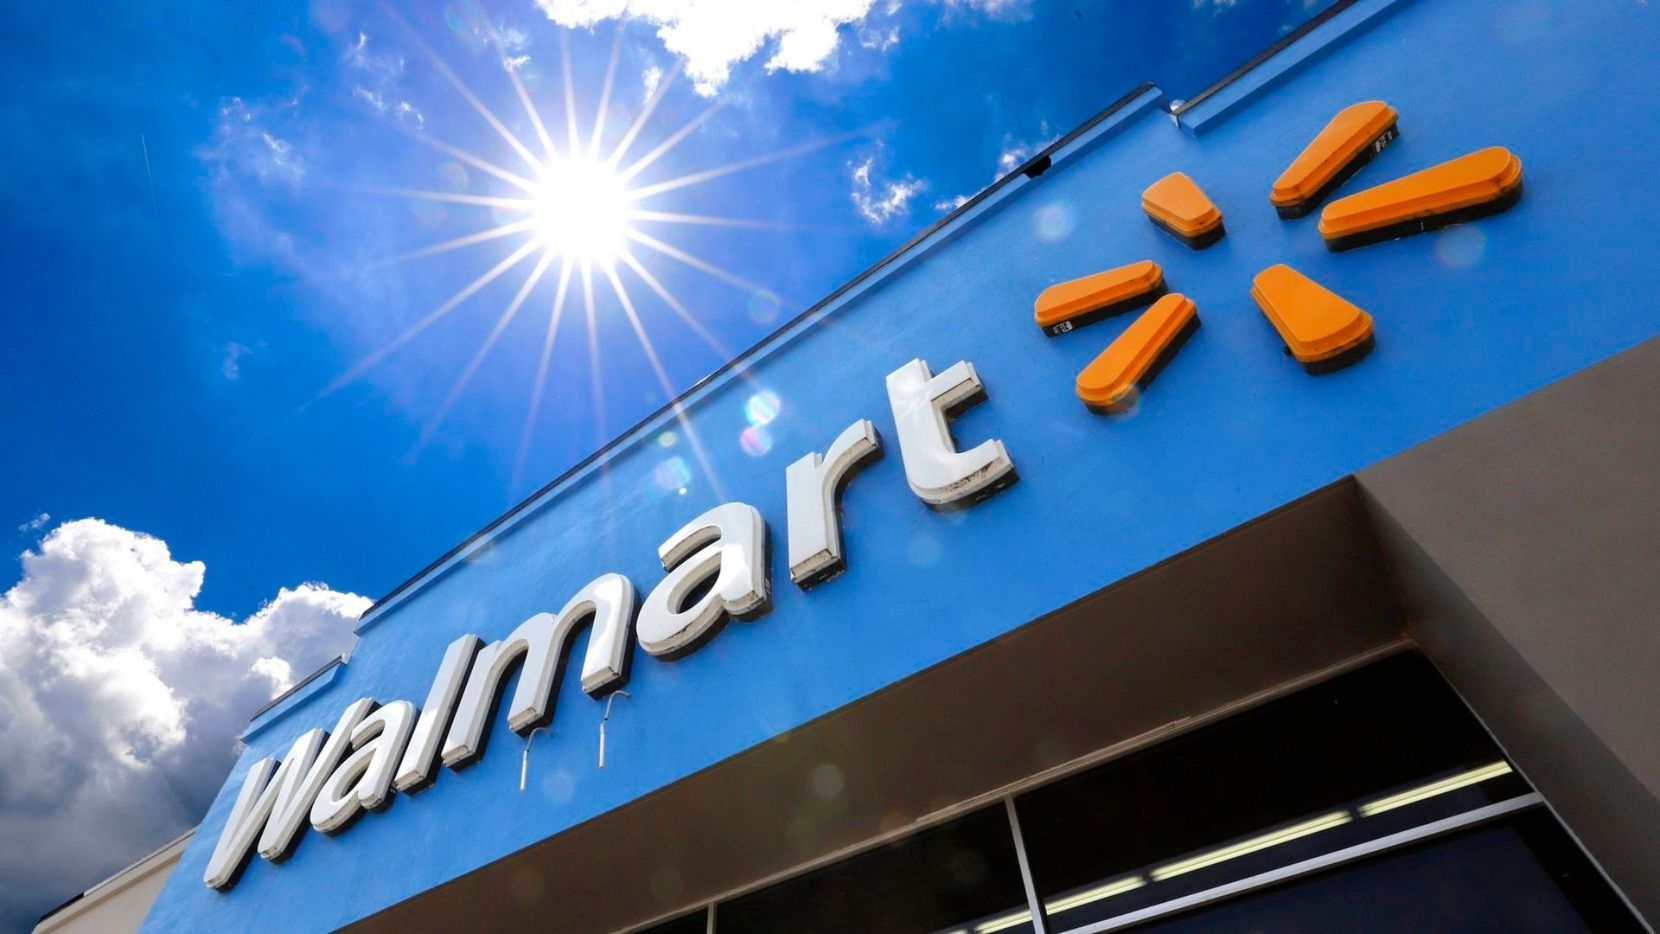 Walmart said Wednesday that it plans to have two-thirds of its hourly jobs in U.S. store be full time with more consistent work schedules by Jan. 31.